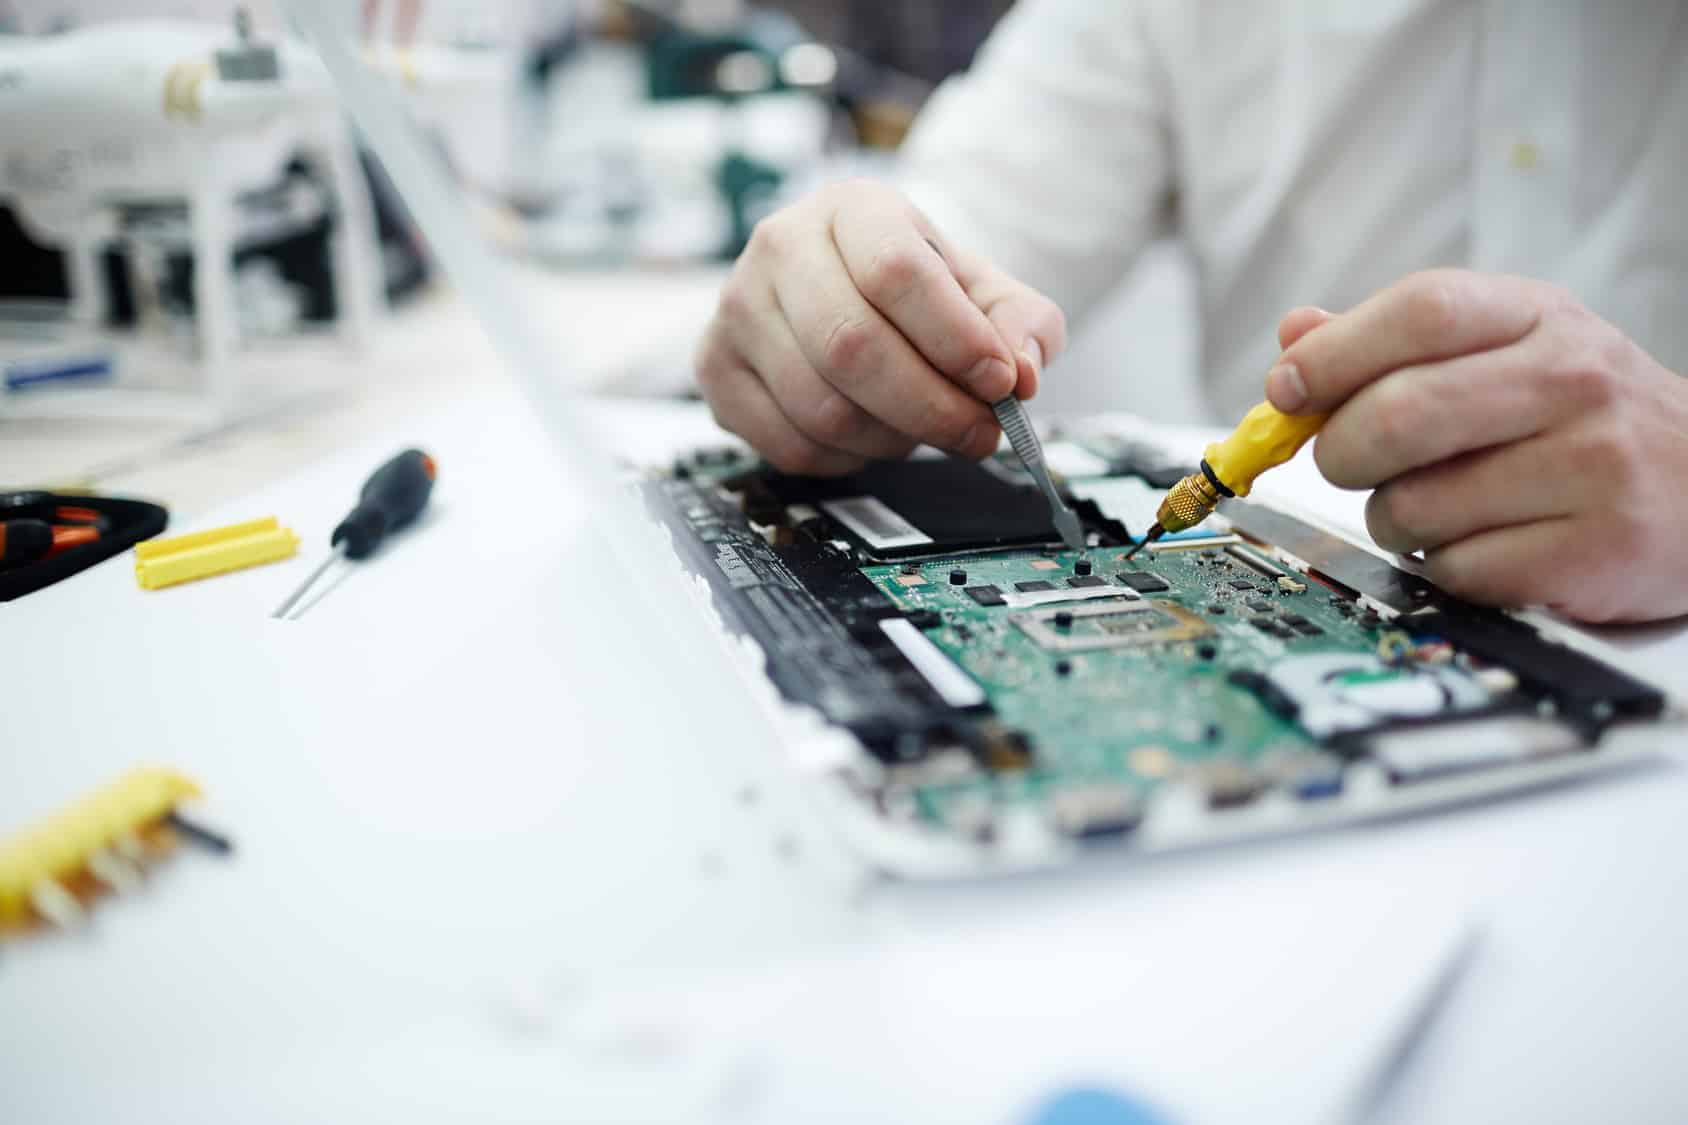 5 Signs it's Time for Some Computer Maintenance